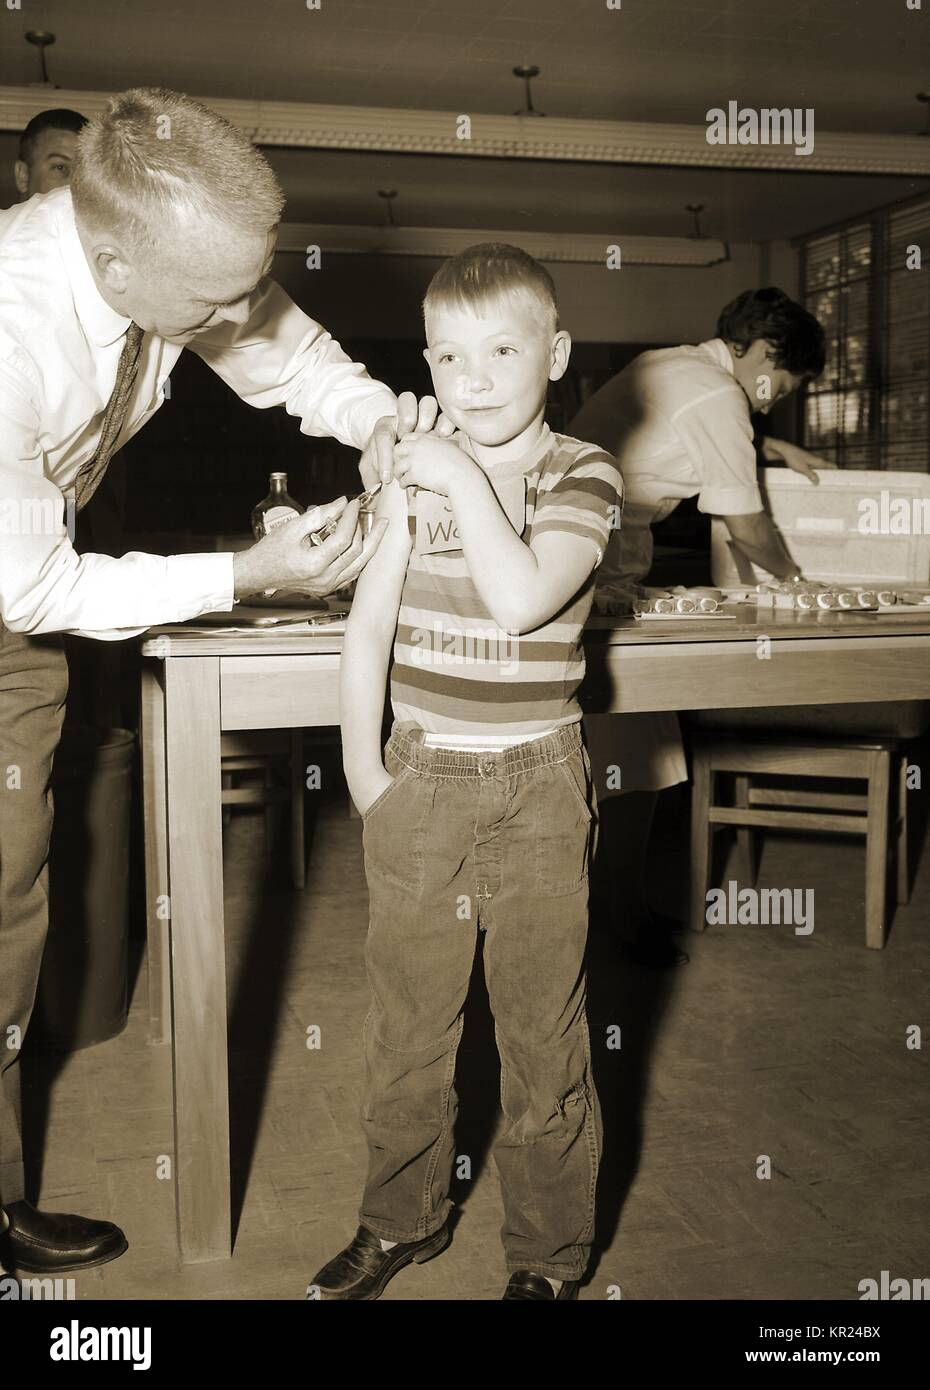 This 1962 image depicts a schoolboy receiving a measles vaccination. As part of the national immunization effort, - Stock Image